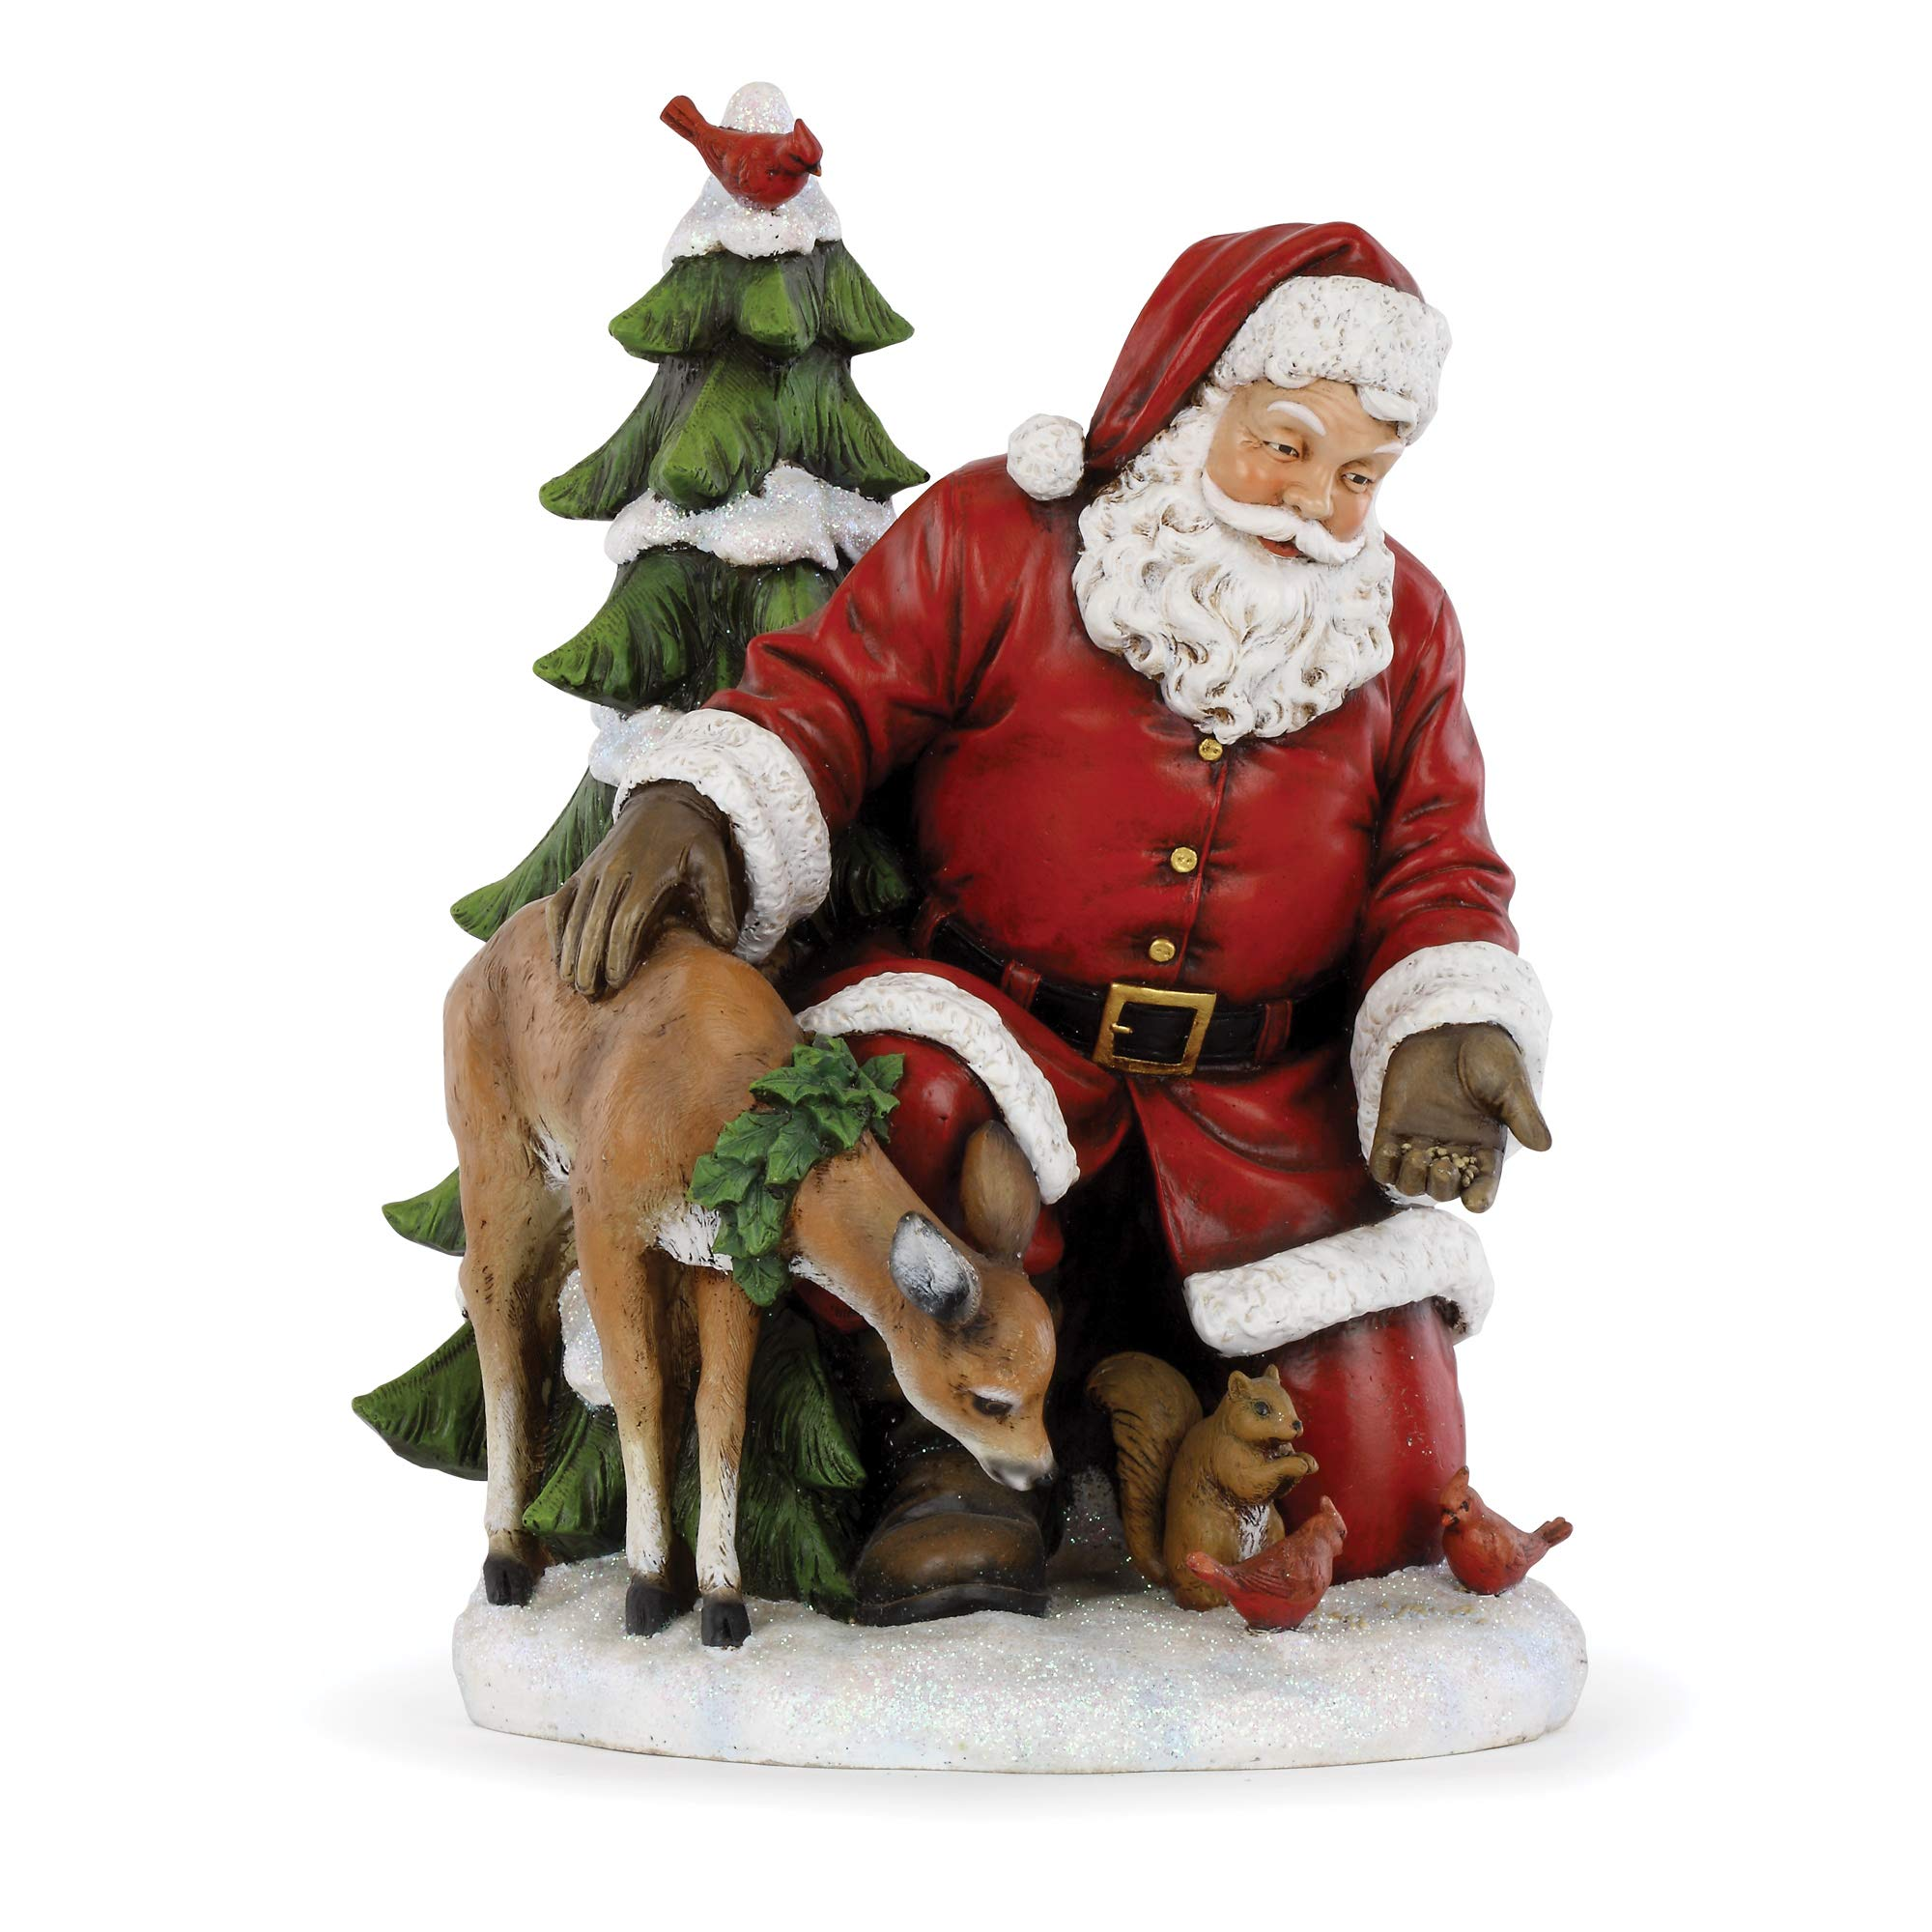 Image of A Christmas Favorite: Woodland Animals with Santa Claus Figurine